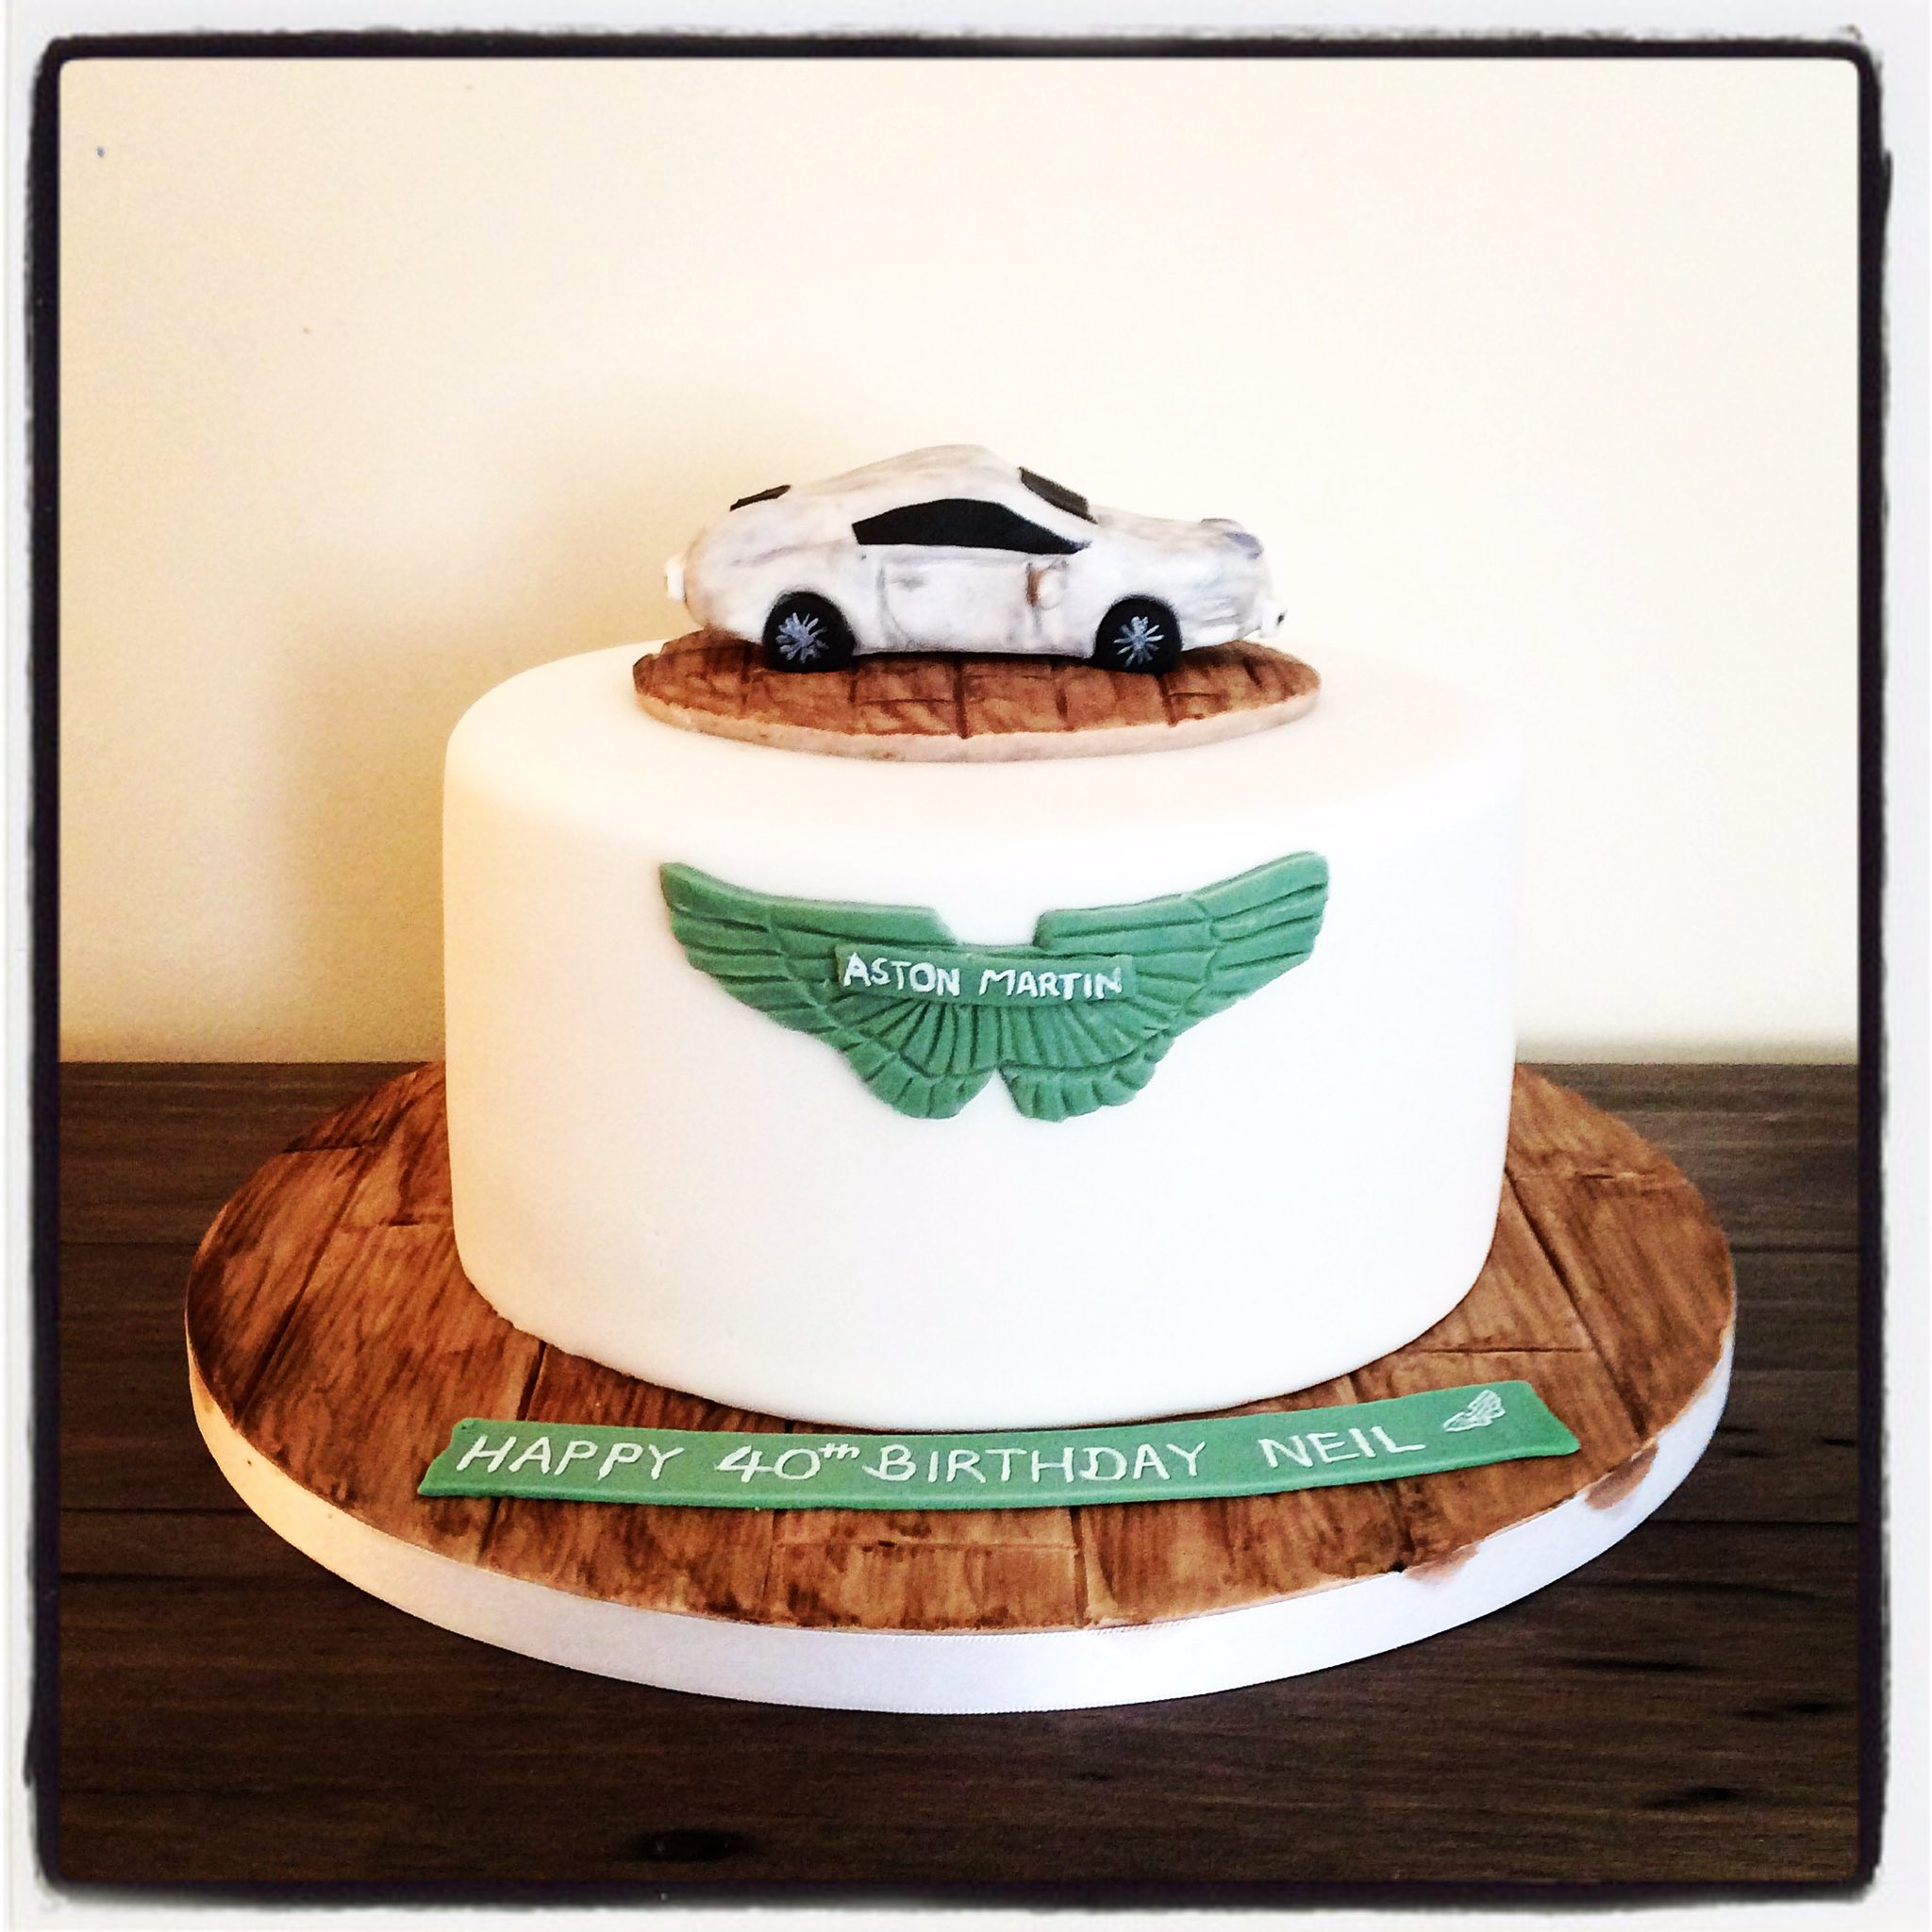 Chloe Cakes Bakes Chloe Tedaldi On Twitter For An Aston Martin Lover All Handmade Austinmartin Cake Cakedecorating